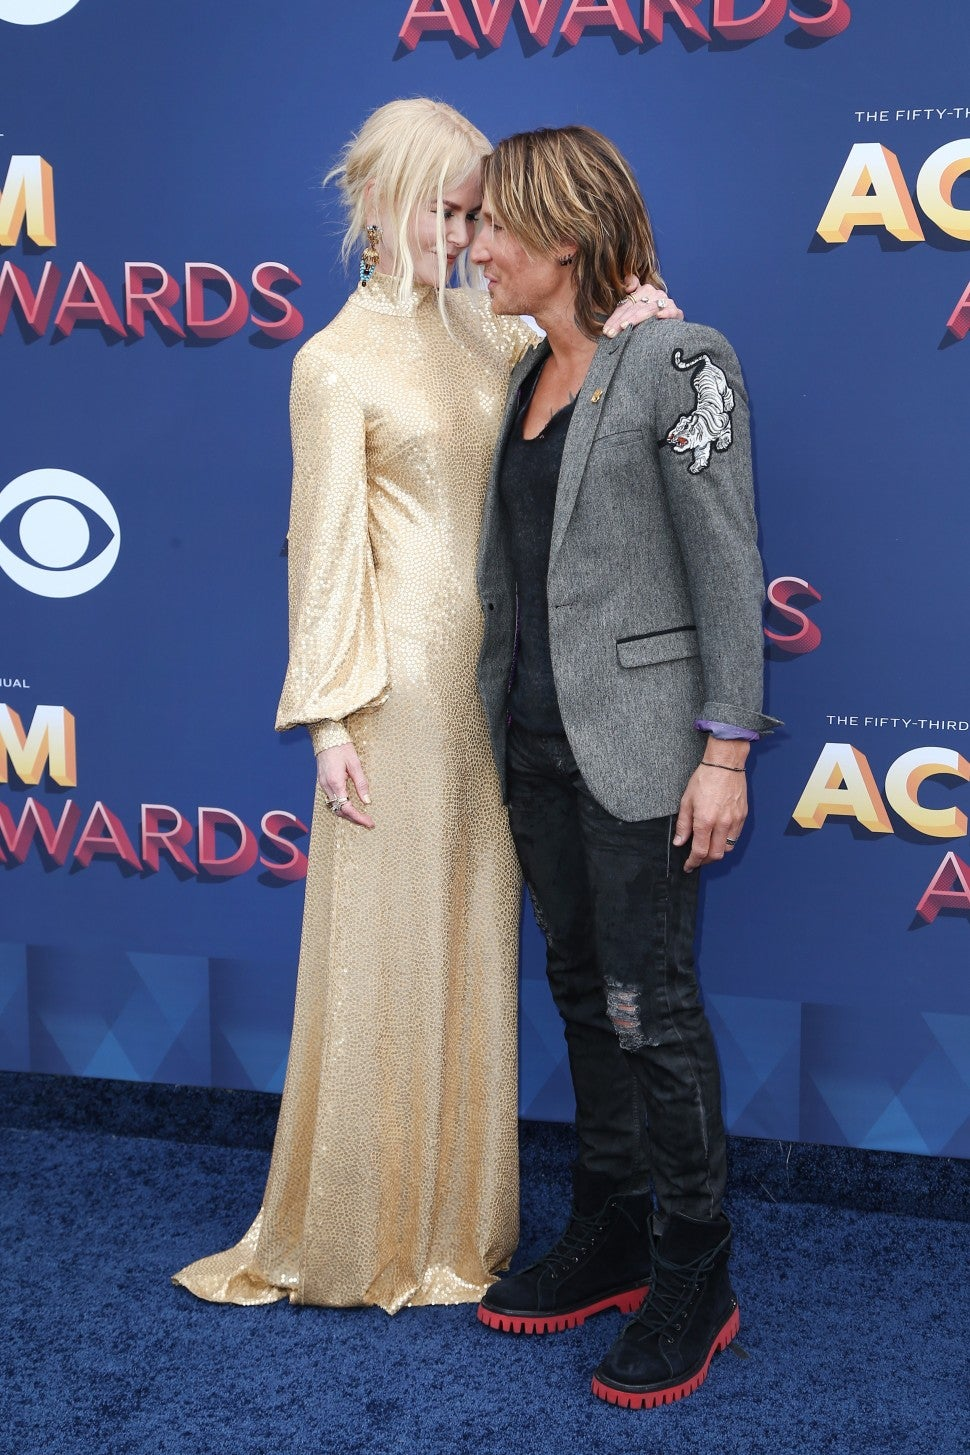 Nicole Kidman and Keith Urban ACM Awards 2018